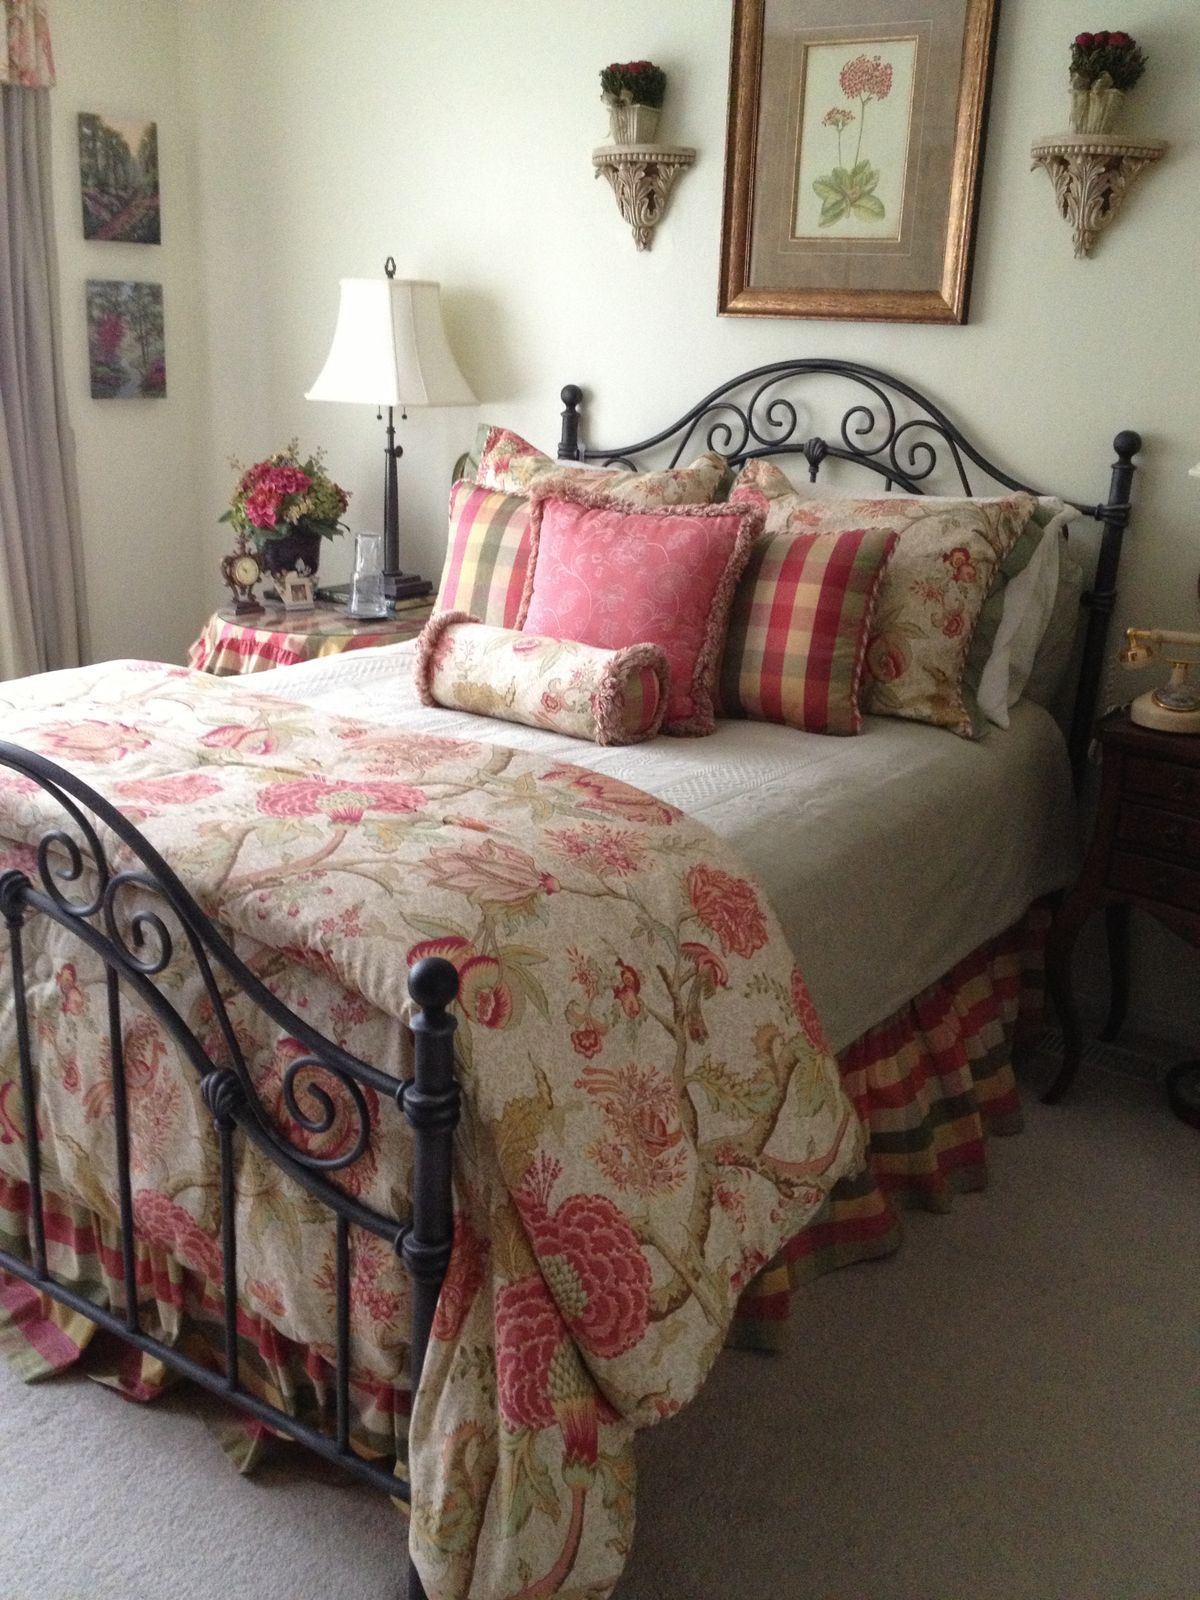 Charming  Cottage  Pinterest  Bedrooms Shabby And Decorating Amusing French Country Bedroom Inspiration Design